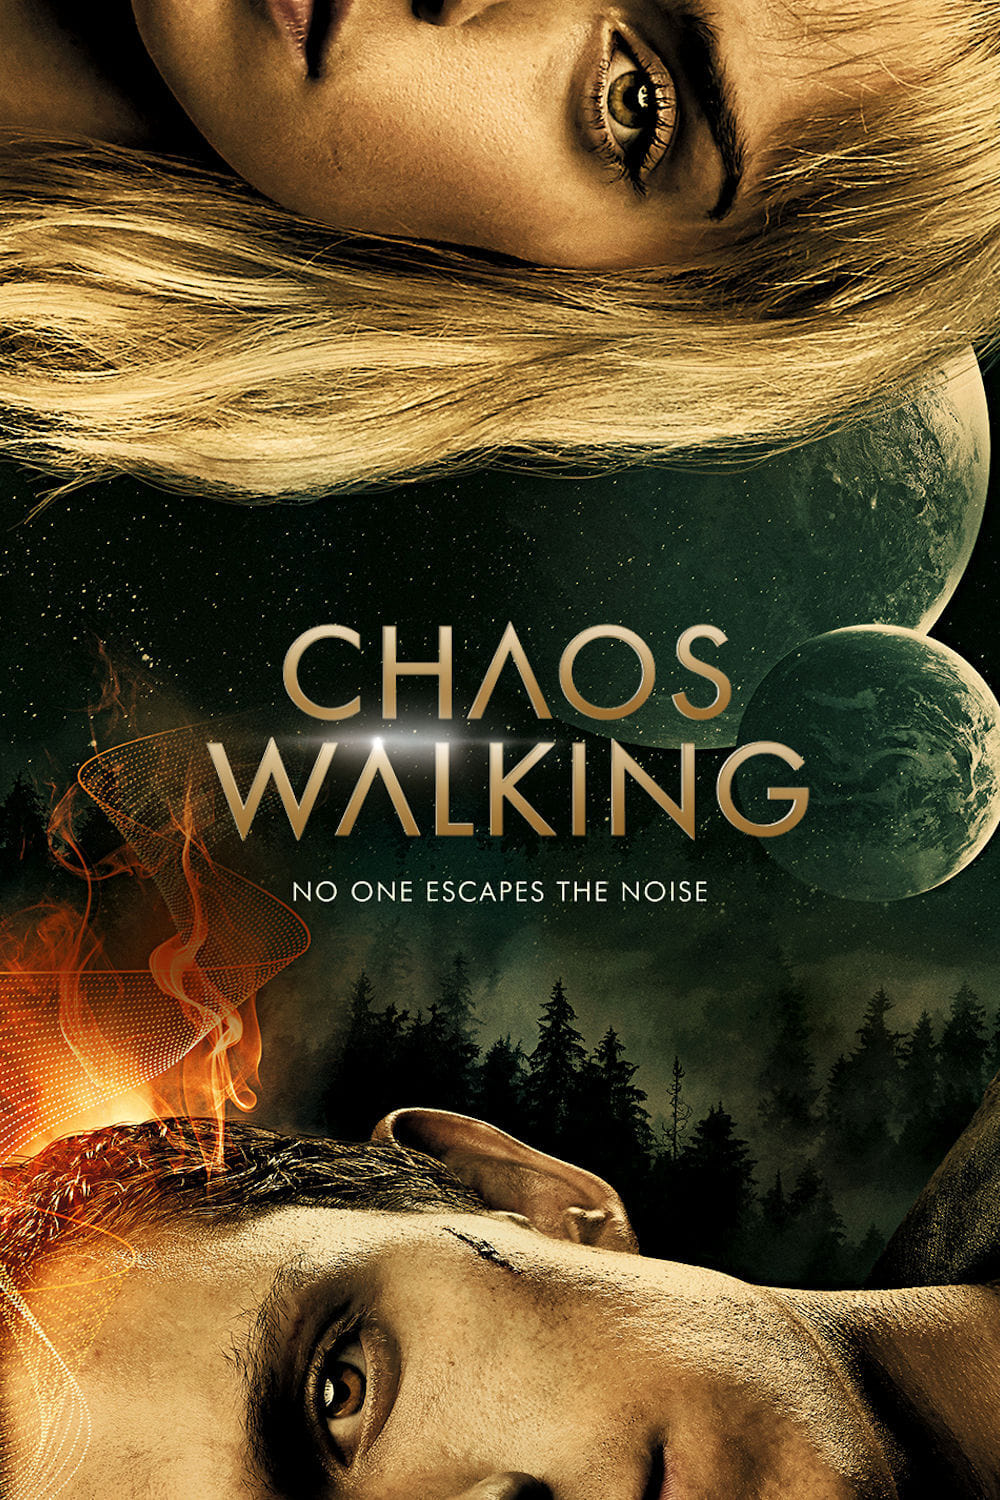 Poster and image movie Chaos Walking